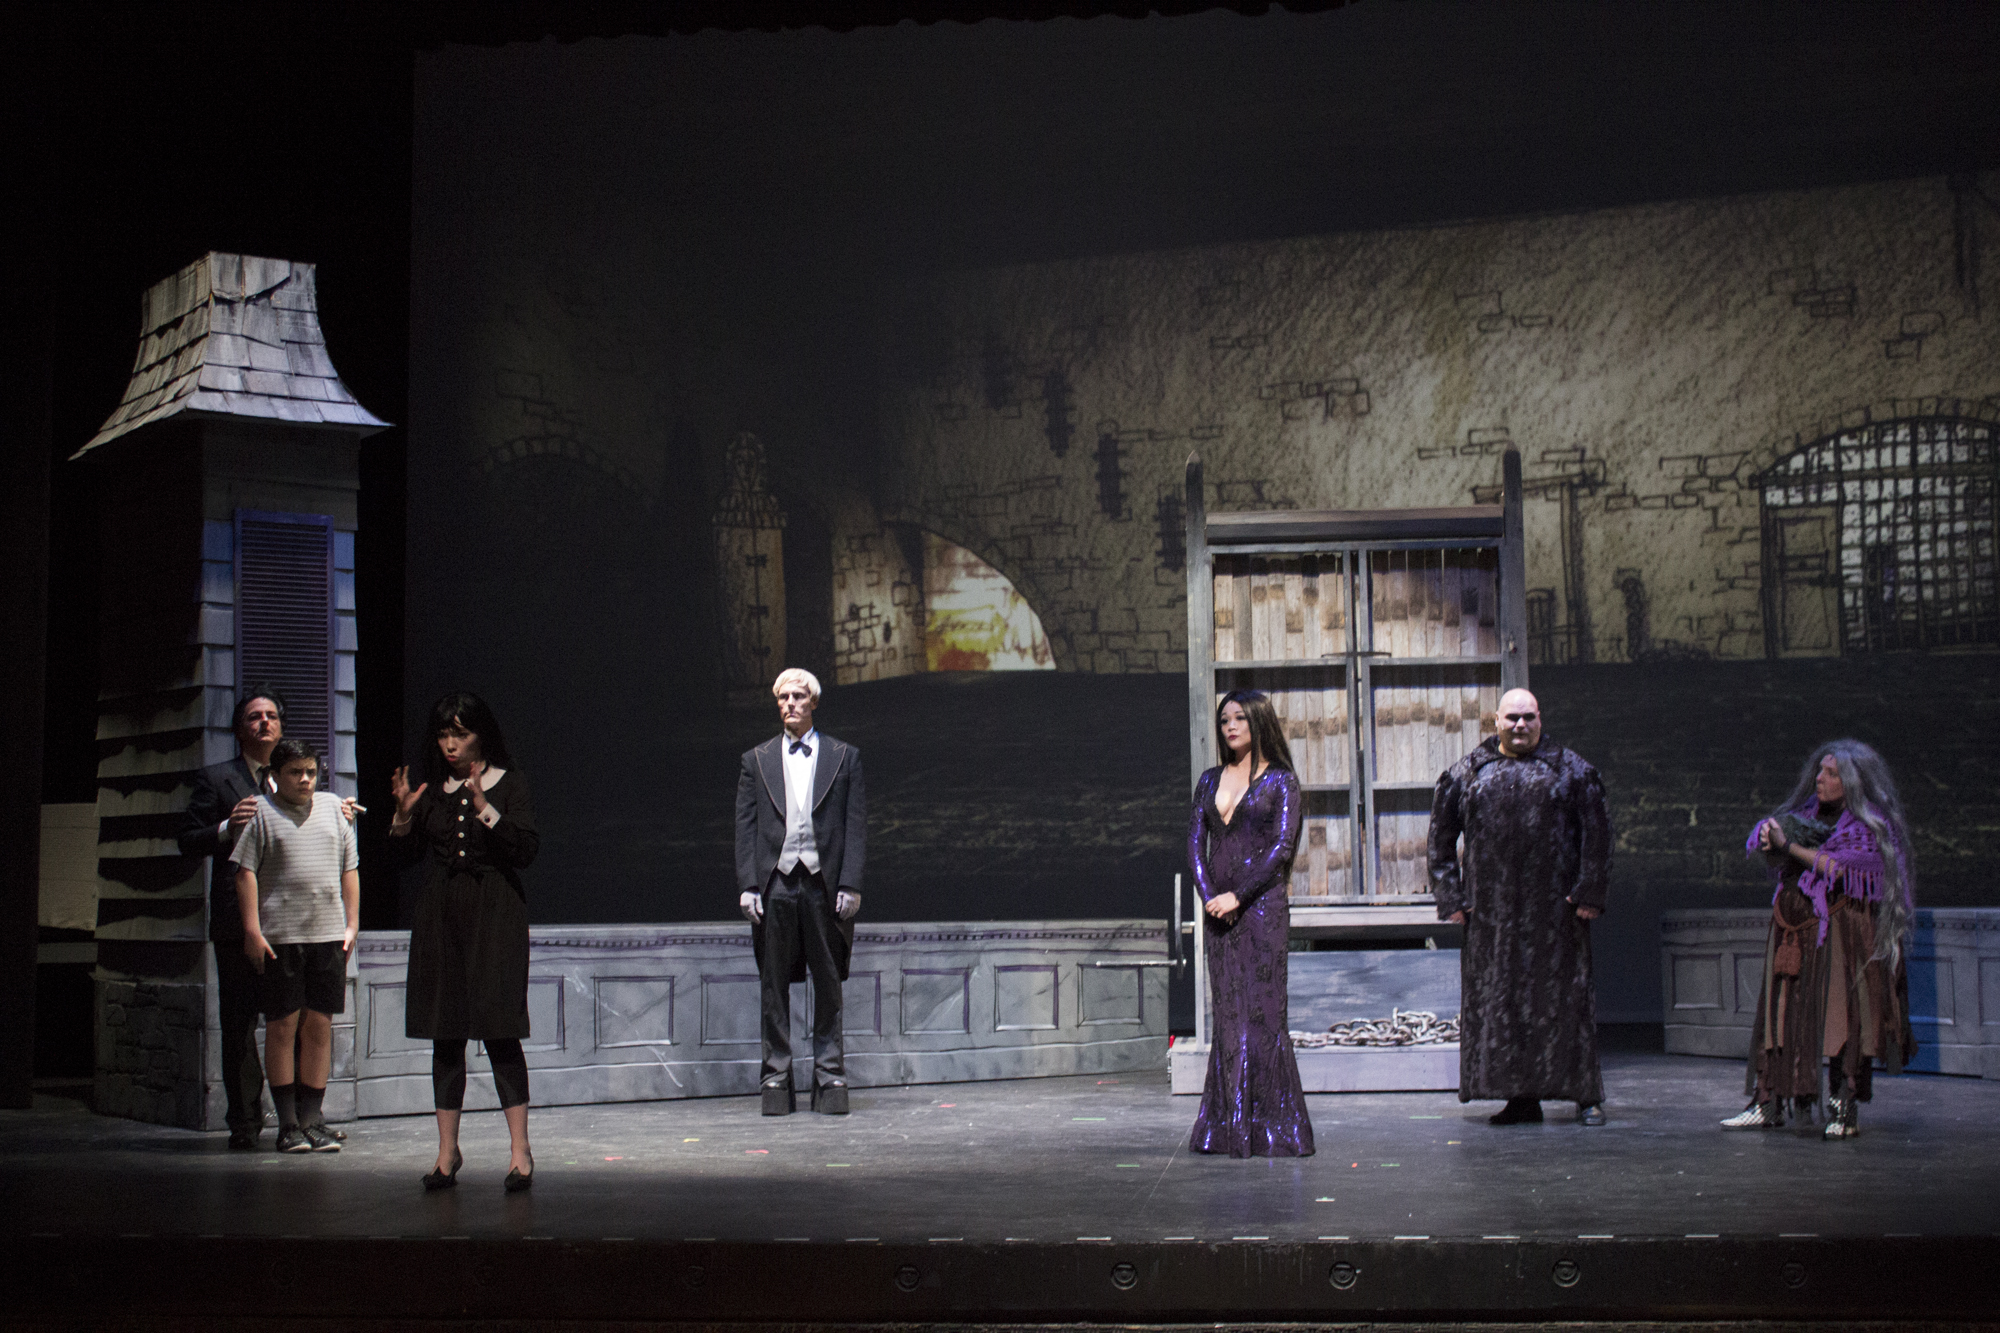 MILC_The Addams Family_L-R_Michael Robinson as Gomez_Javier Casanova Jr. as Pugsley_Caroline Ellis as Wednesday_Russell Batchelor as Lurch_Olivia de Guzman Emile as Morticia_Stephen Bates as Fester_Megan Kelly-Bates as Grandma_Photo by Travis J. Fant